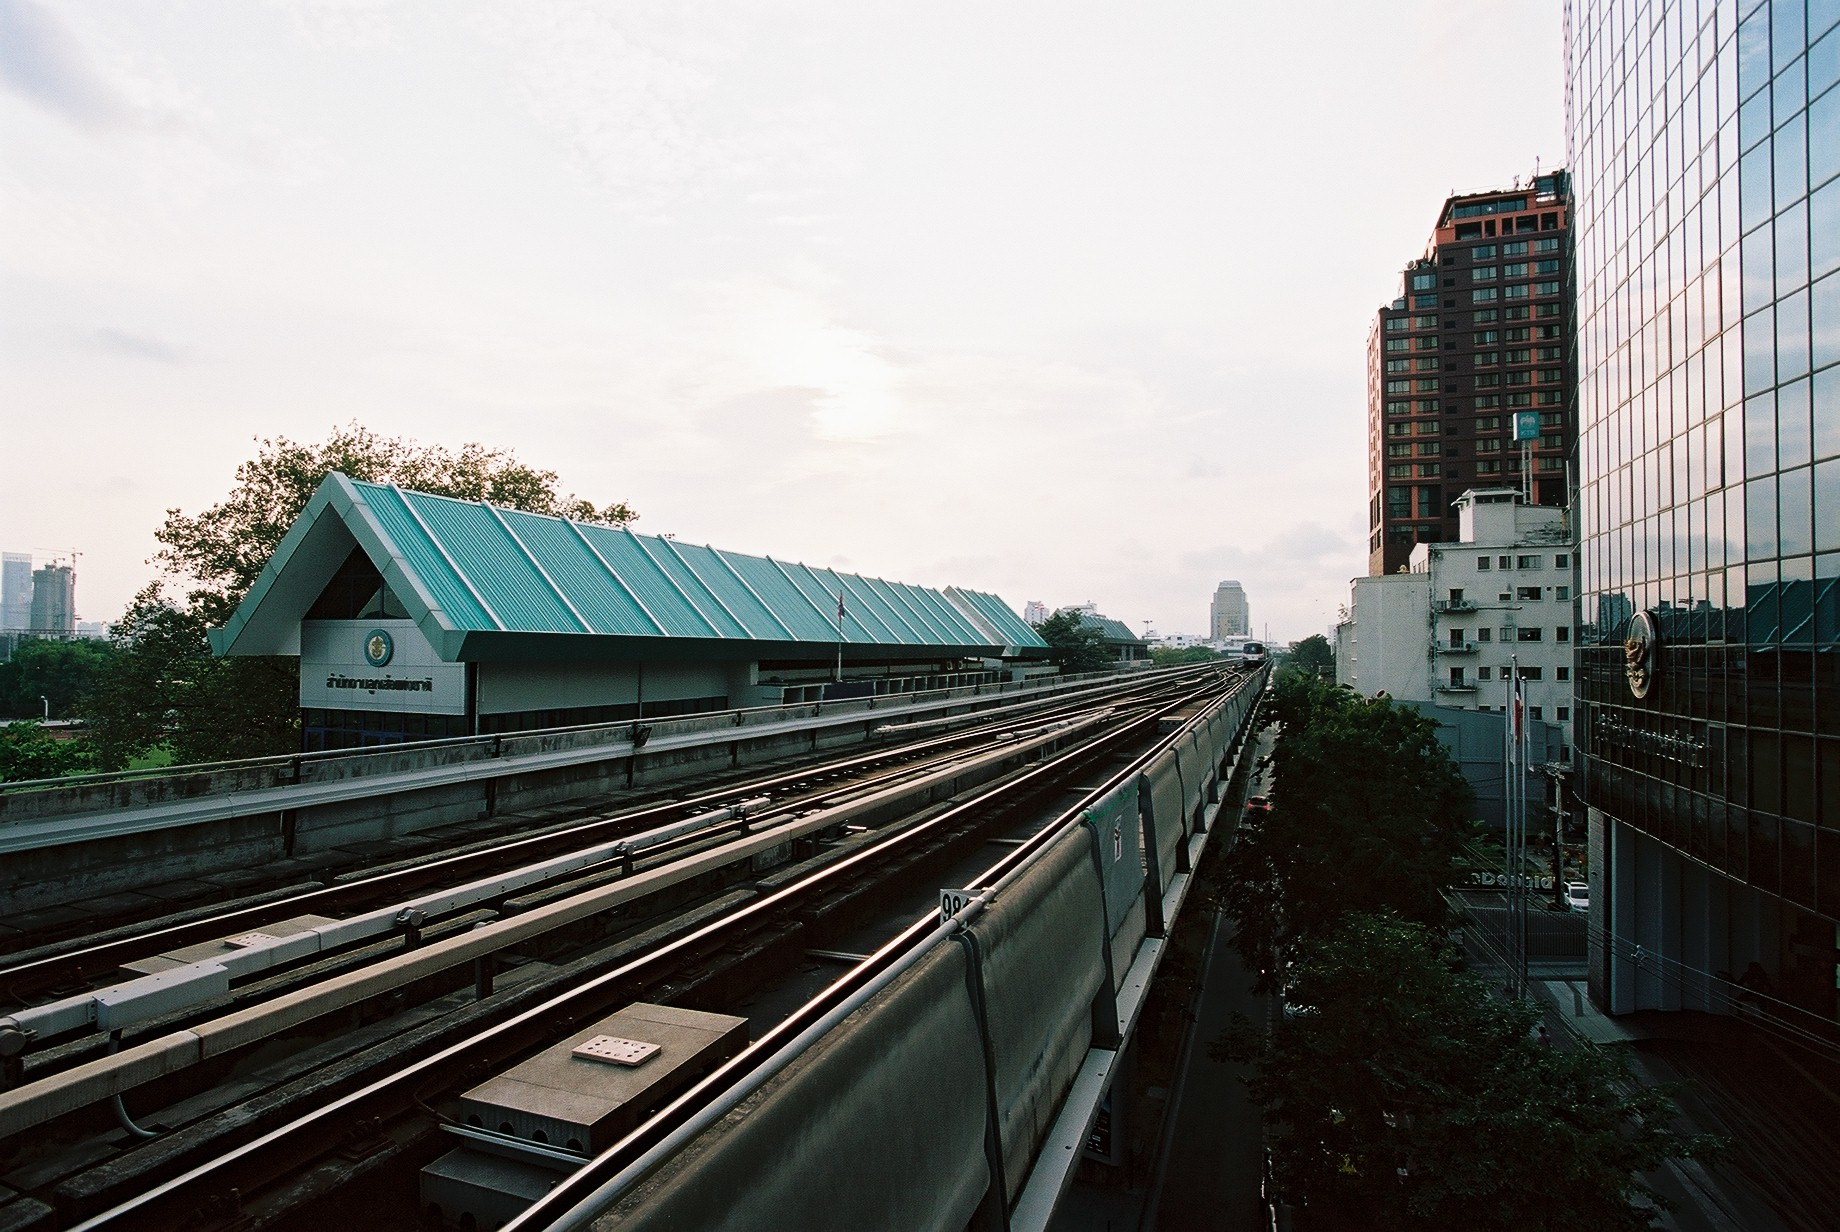 Portra 160 | One thing I love about the BTS stations. Passengers are allowed to walk to the ends of the platforms to get a better view of the area.